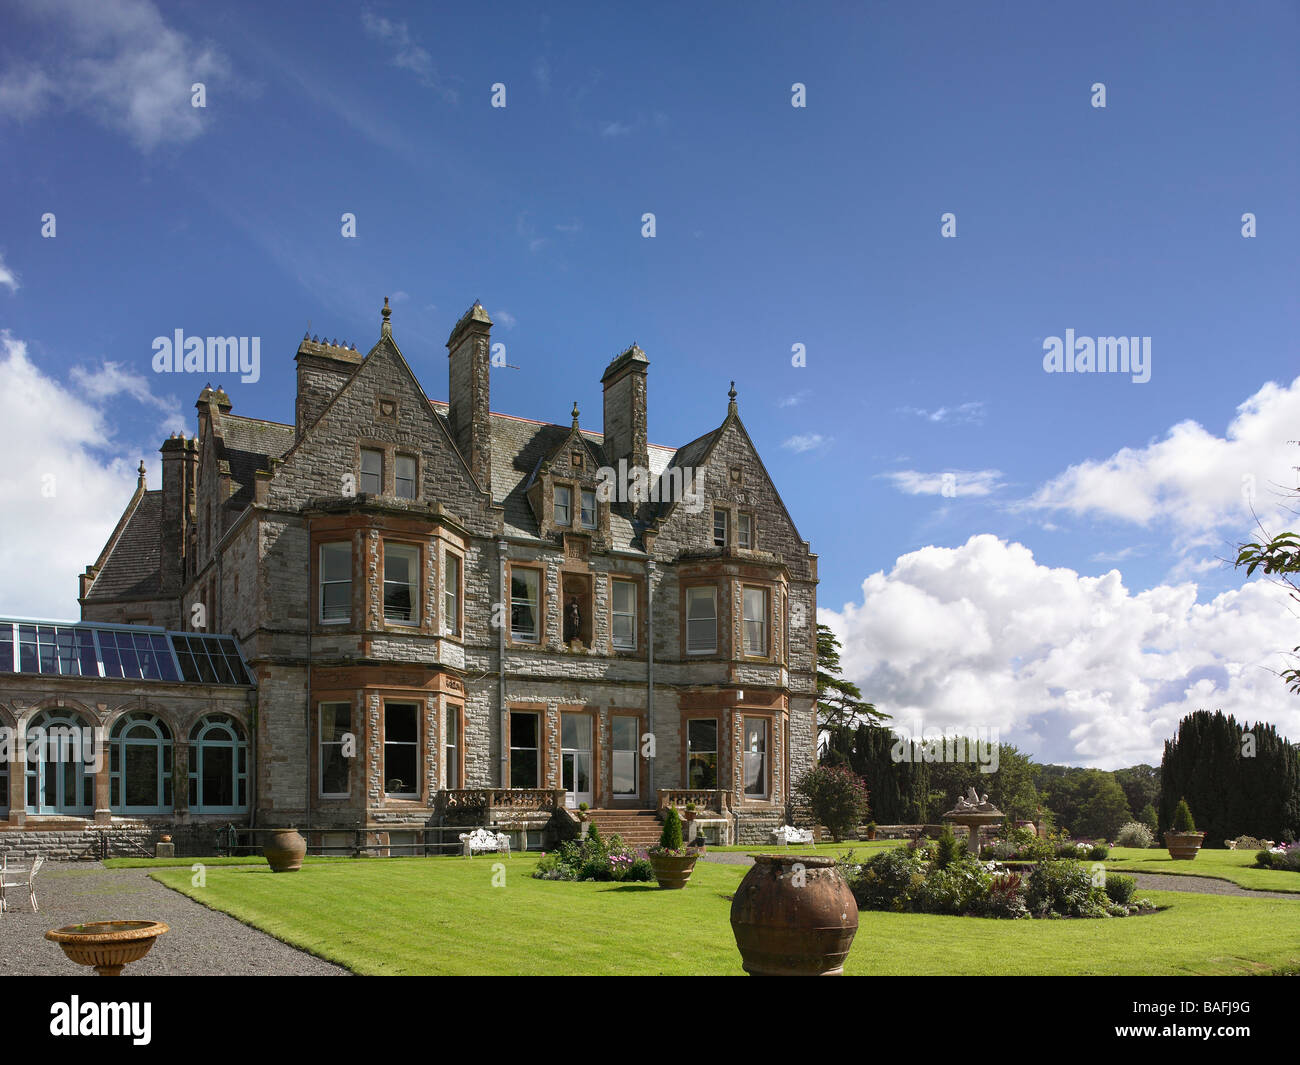 Exterior view of the Club Pavilion from the gardens at Castle Leslie Estate - Stock Image